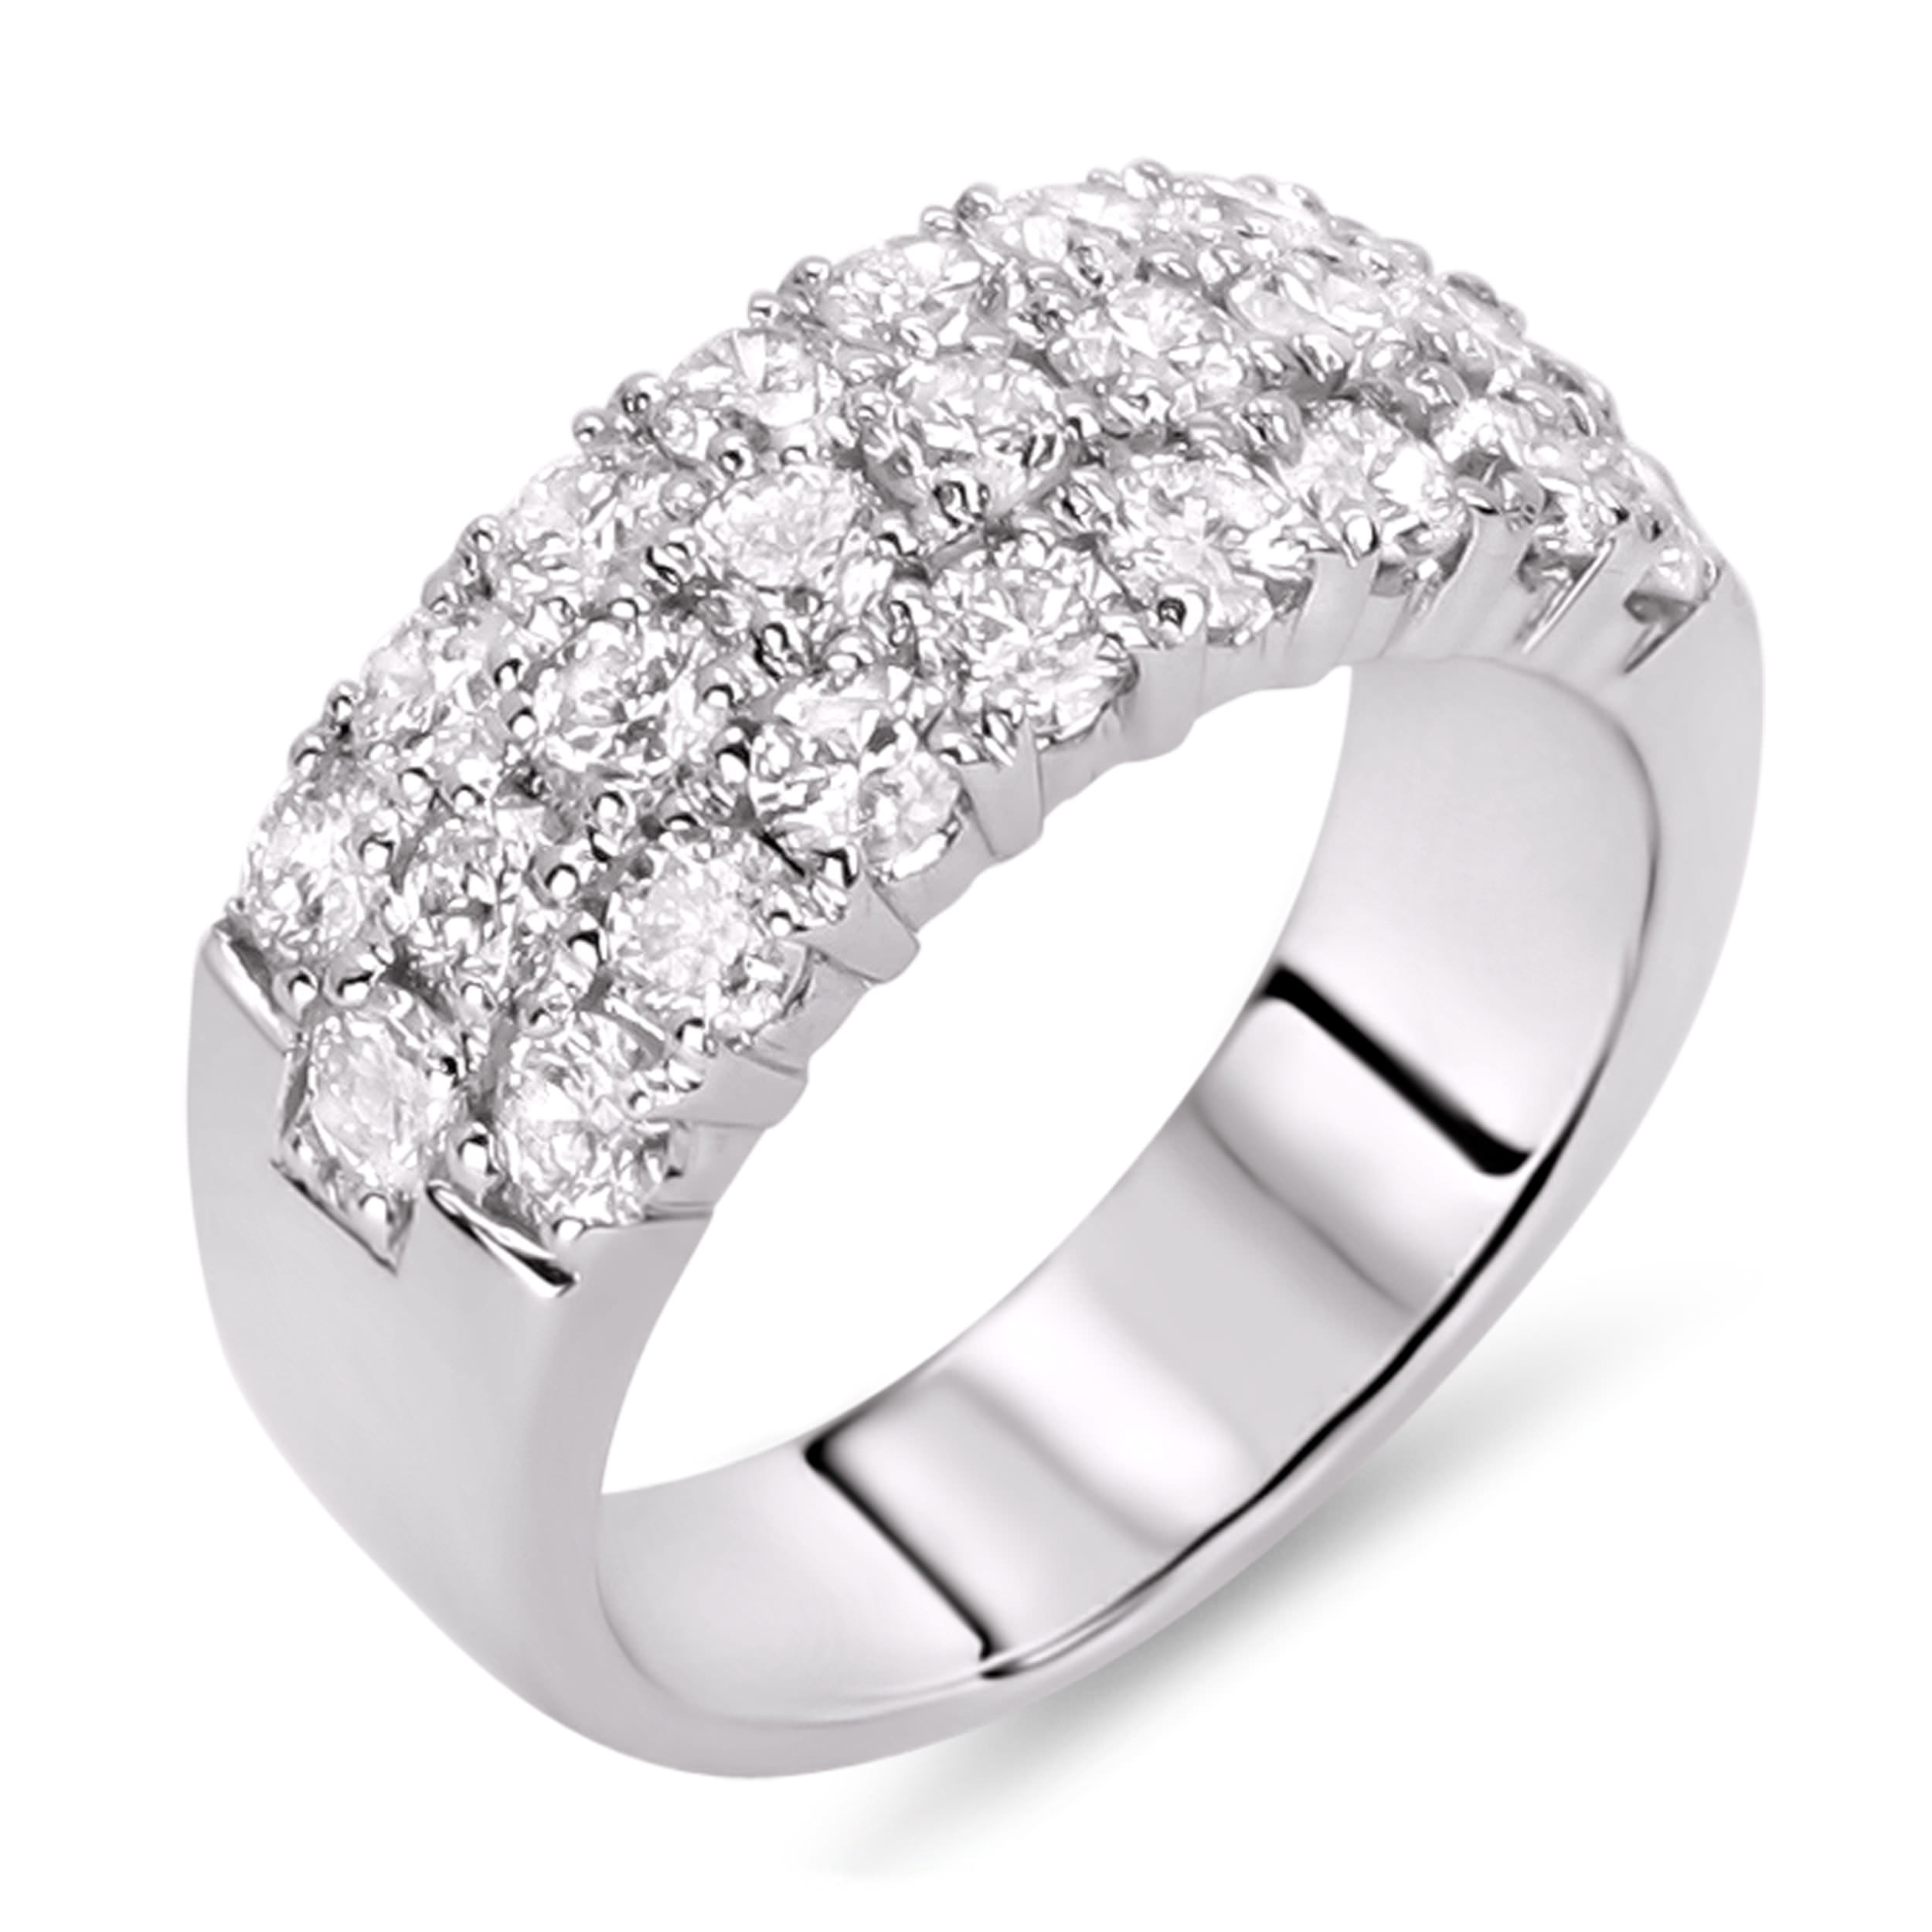 hero boodles rings platinum faded ring rg jewellery anniversary diamond raindance classic and five